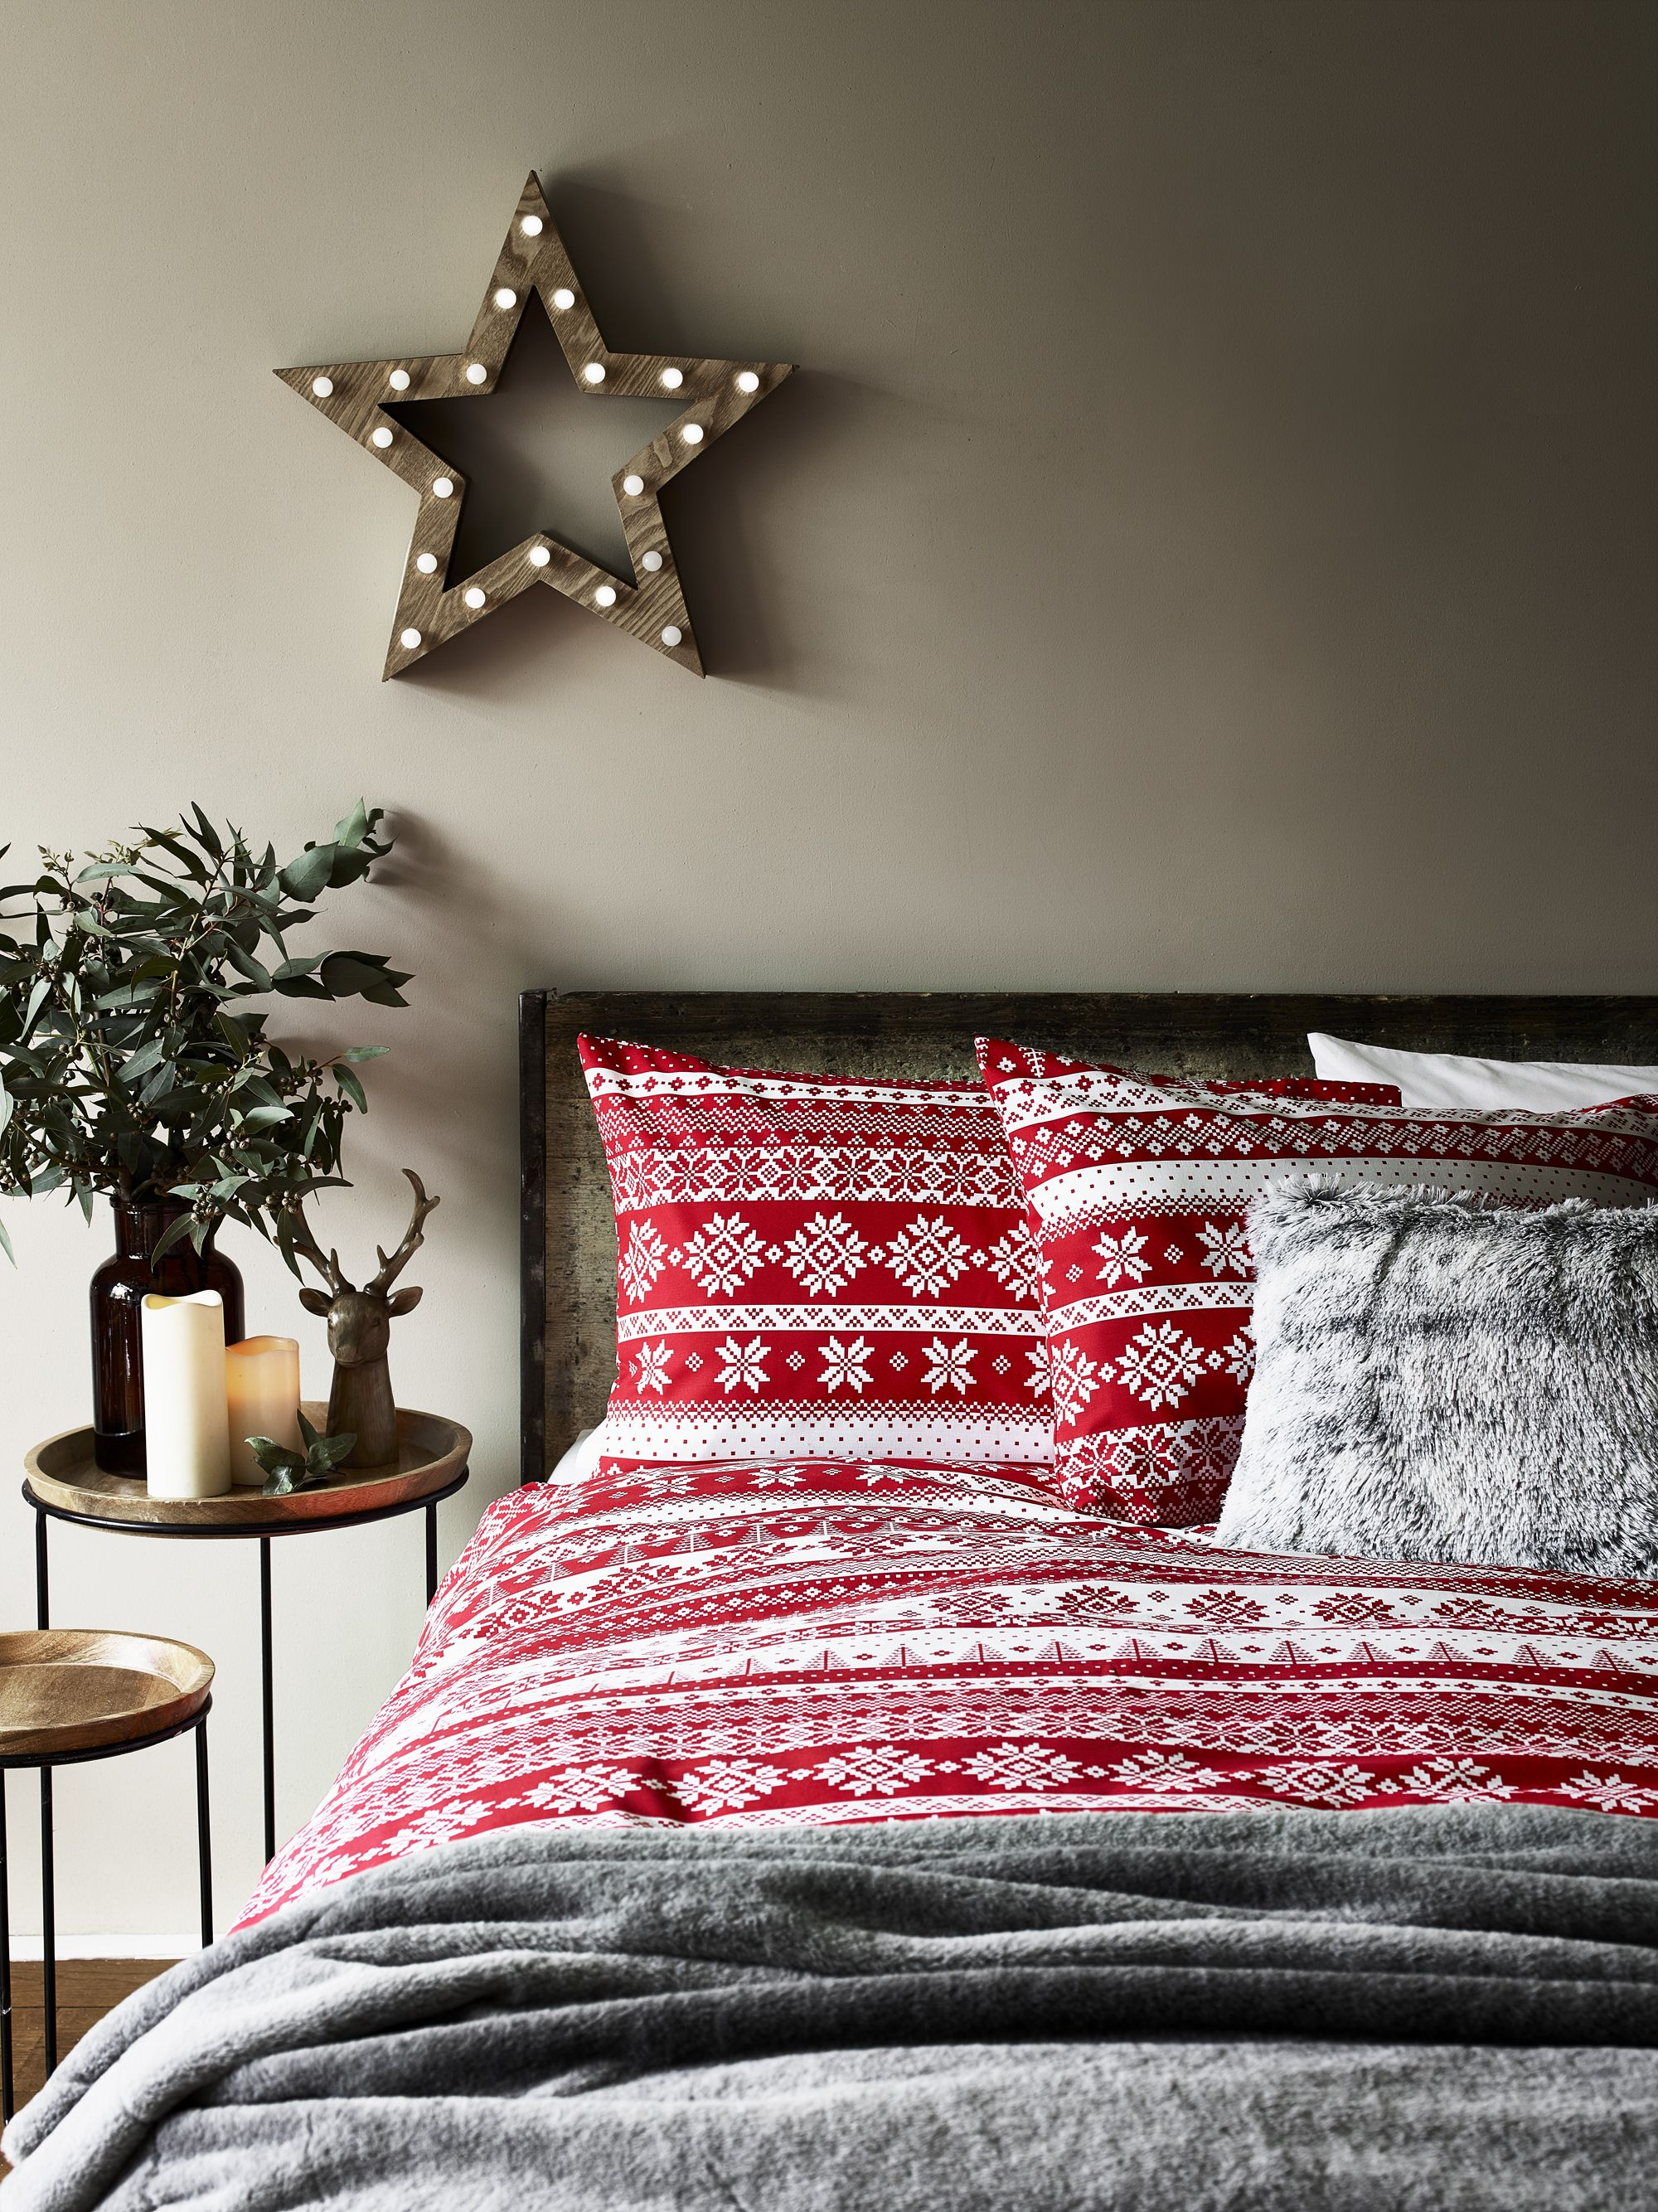 Christmas bedding - Xmas bedding sets